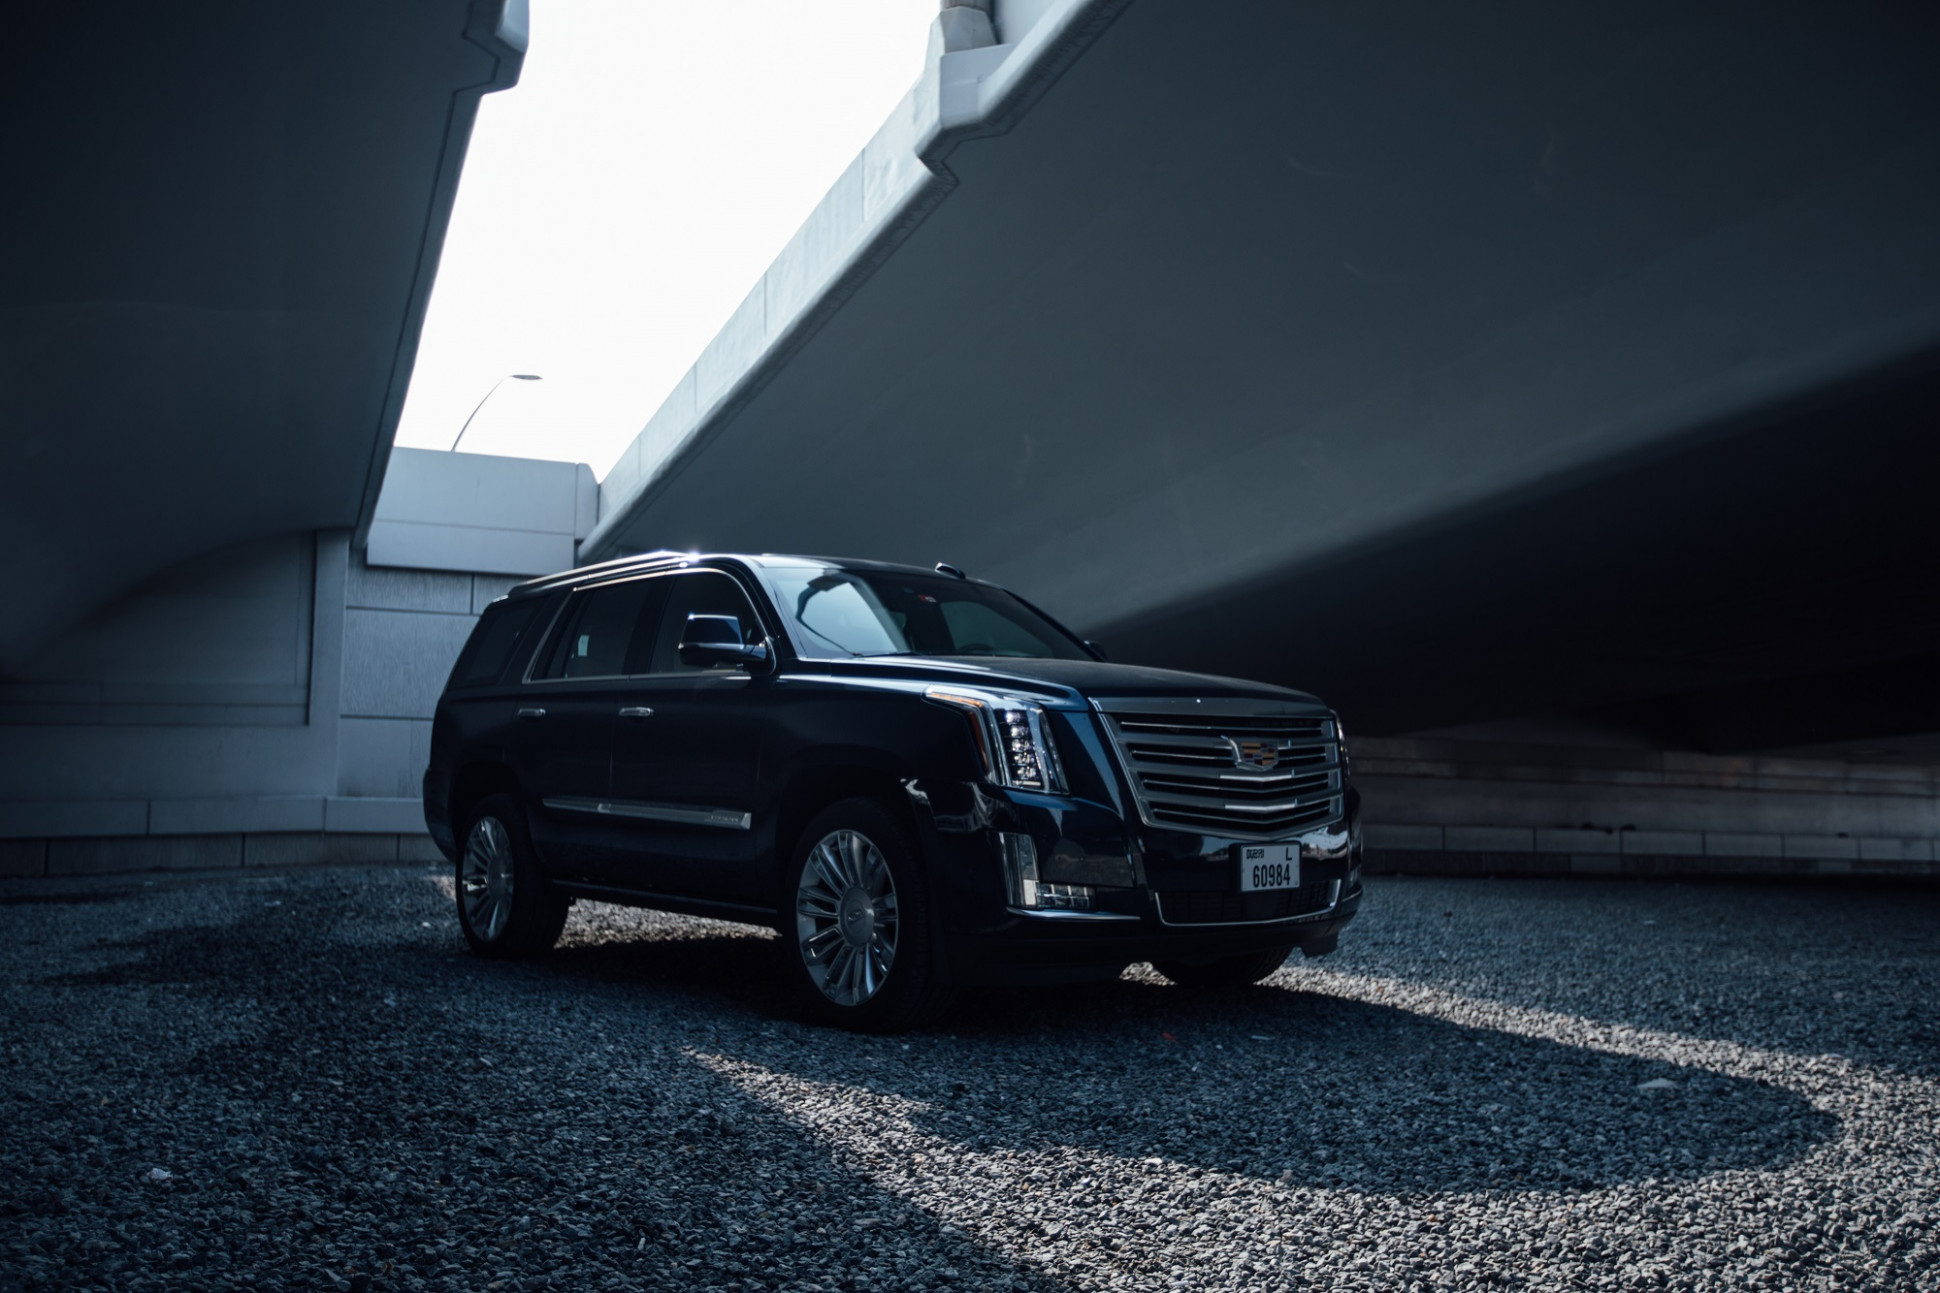 The new 7 Cadillac Escalade, more luxurious than ever before